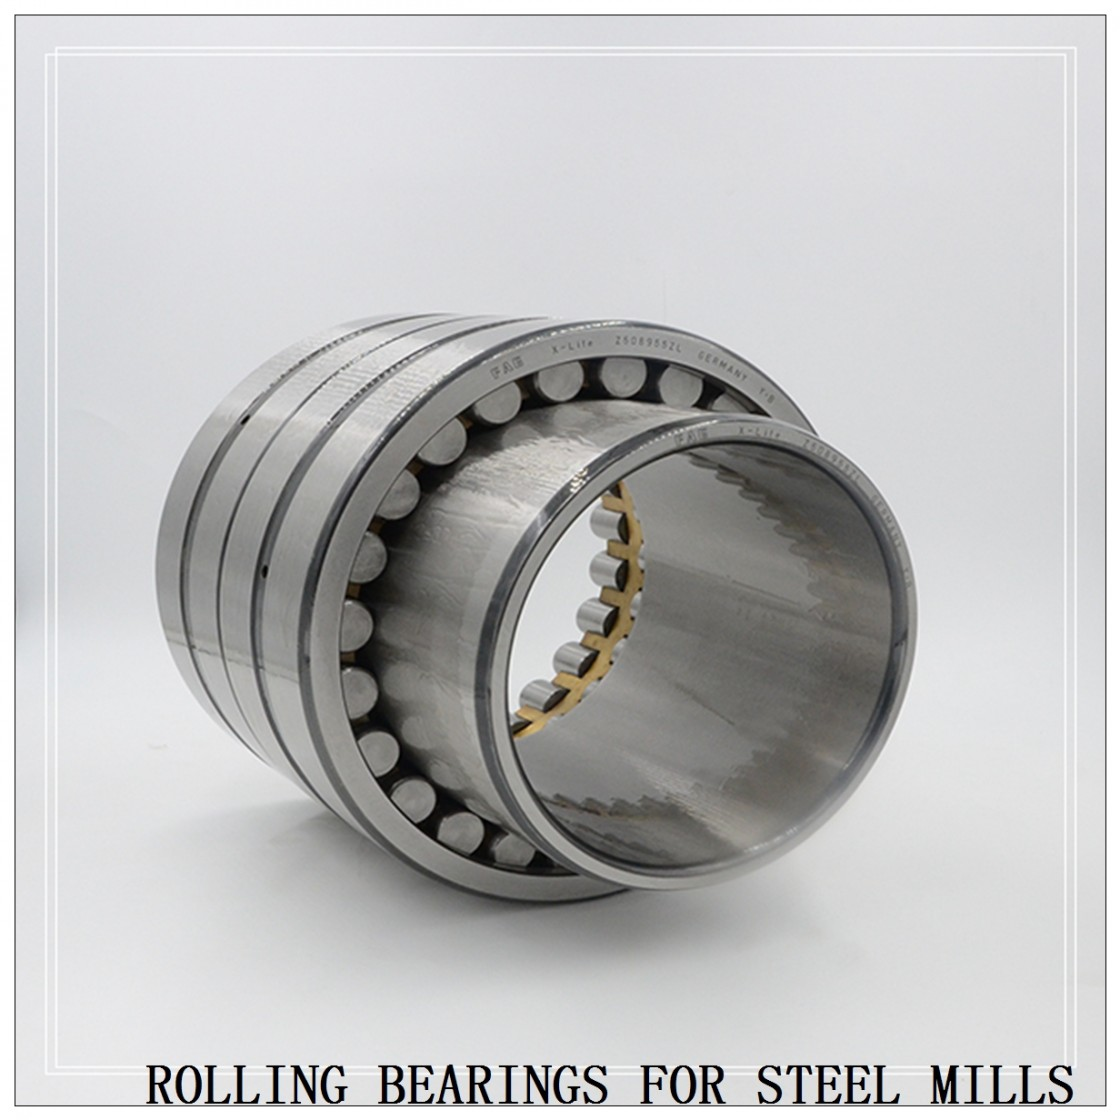 NSK 130KV895 ROLLING BEARINGS FOR STEEL MILLS